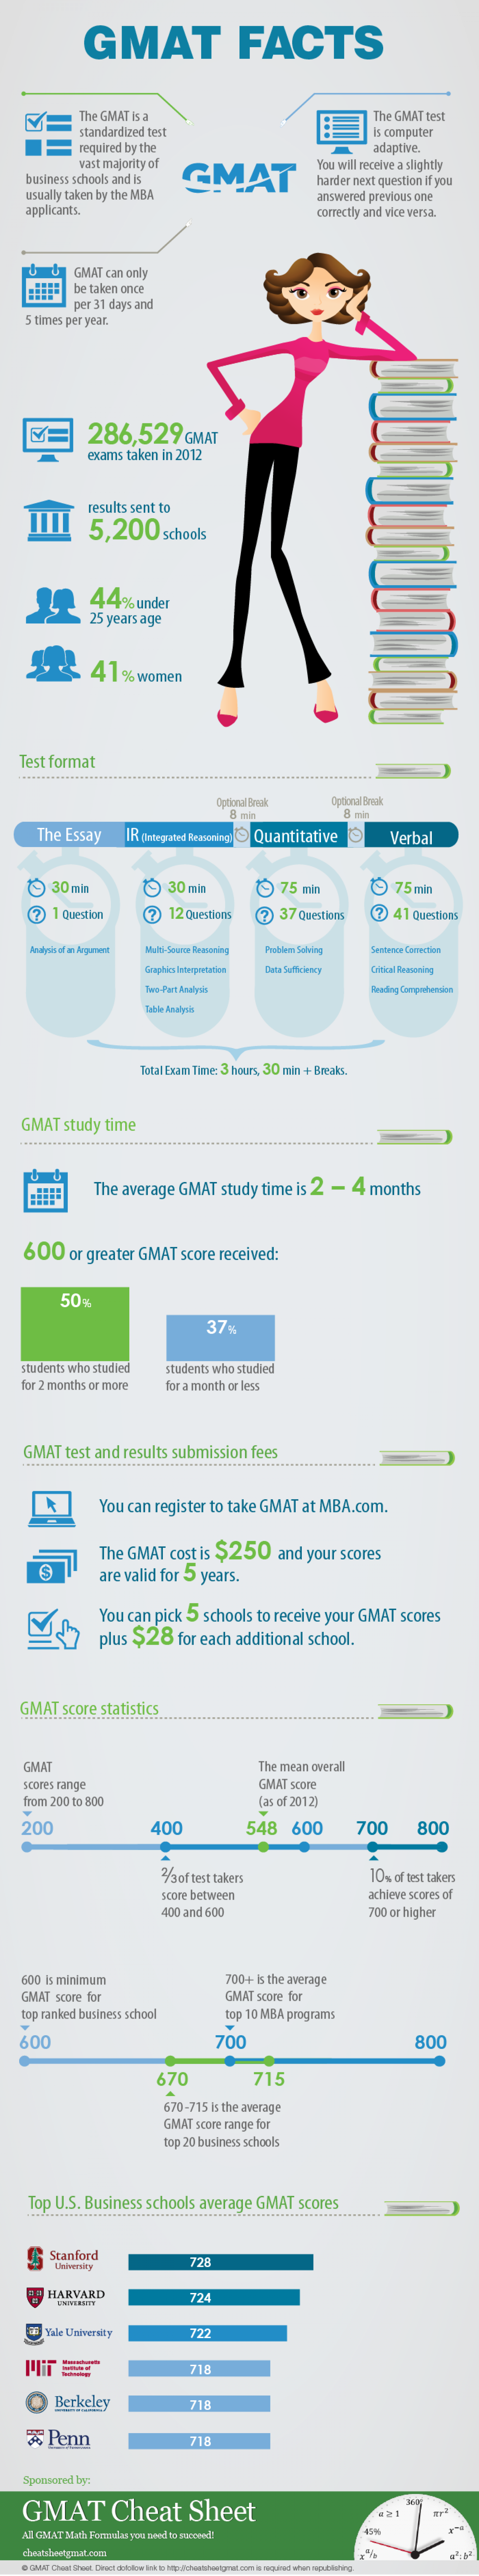 GMAT Facts Infographic